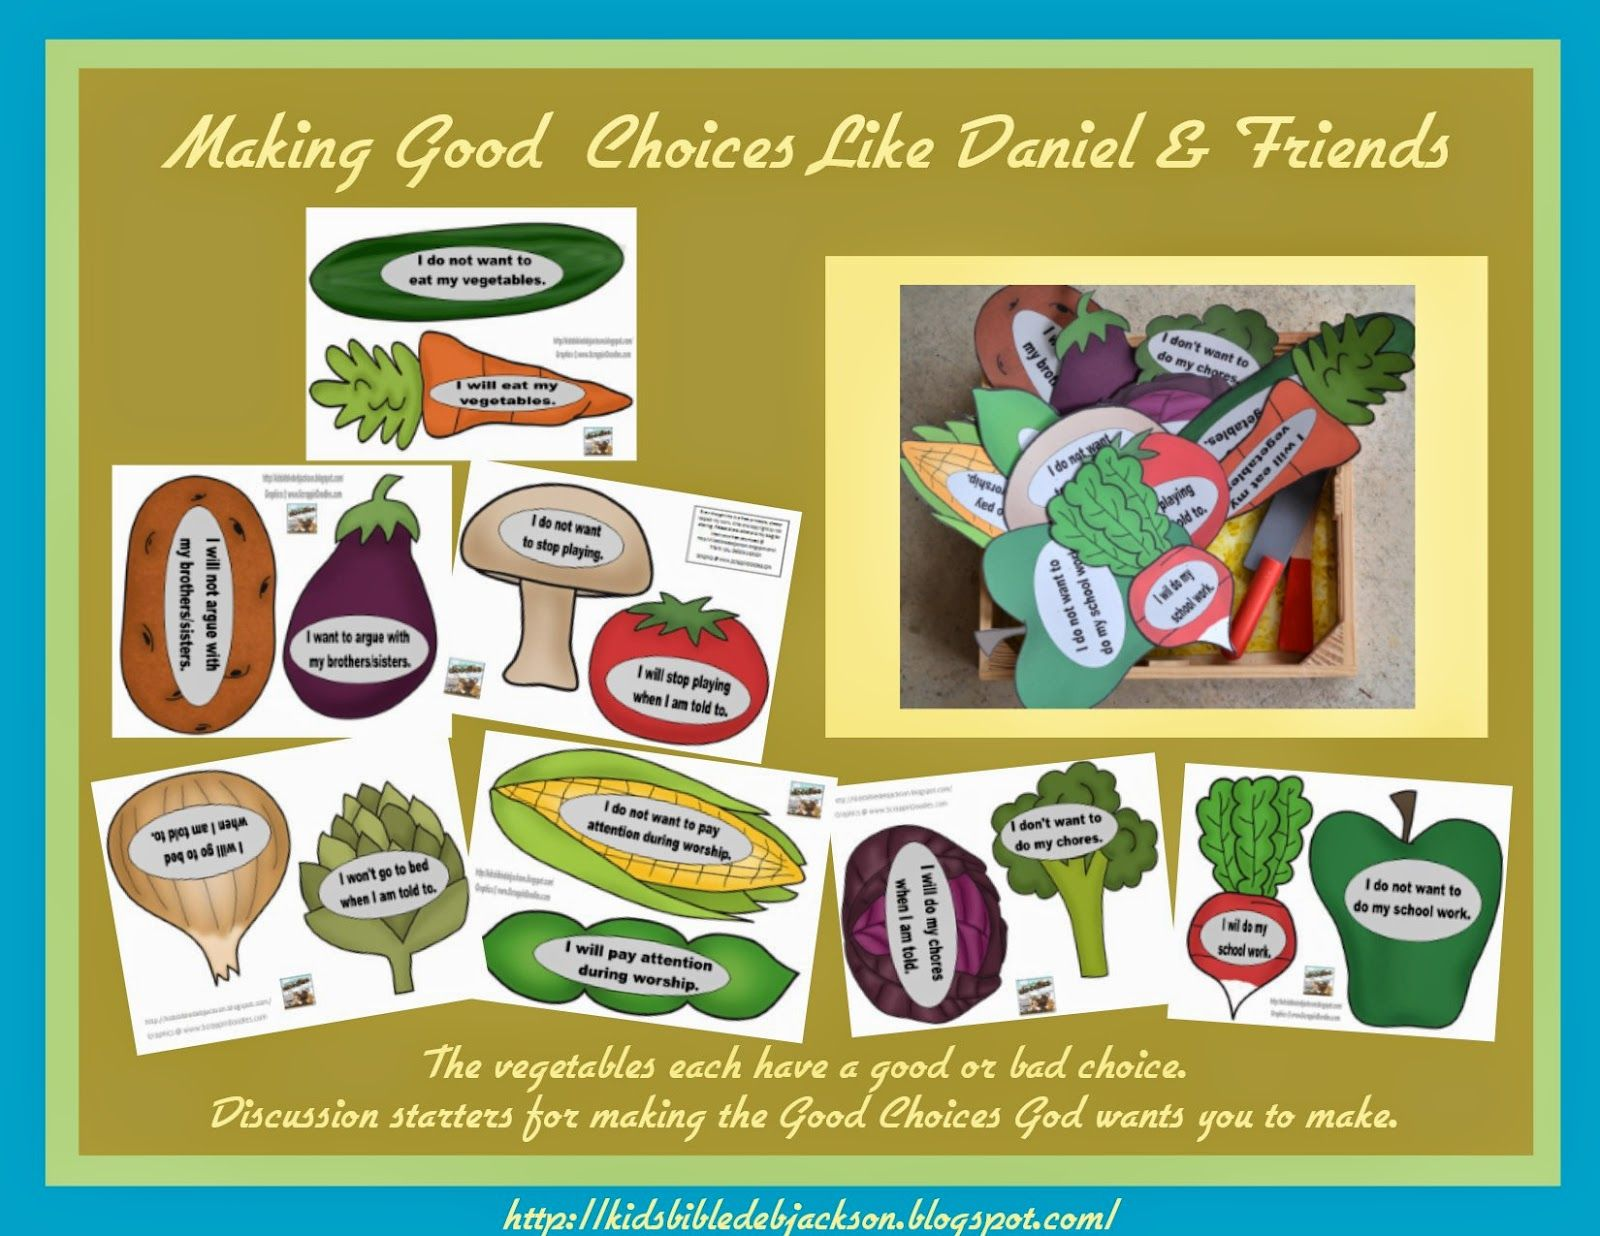 Bible Fun For Kids: Daniel, Shadrach, Meshach and Abednego Refuse ...